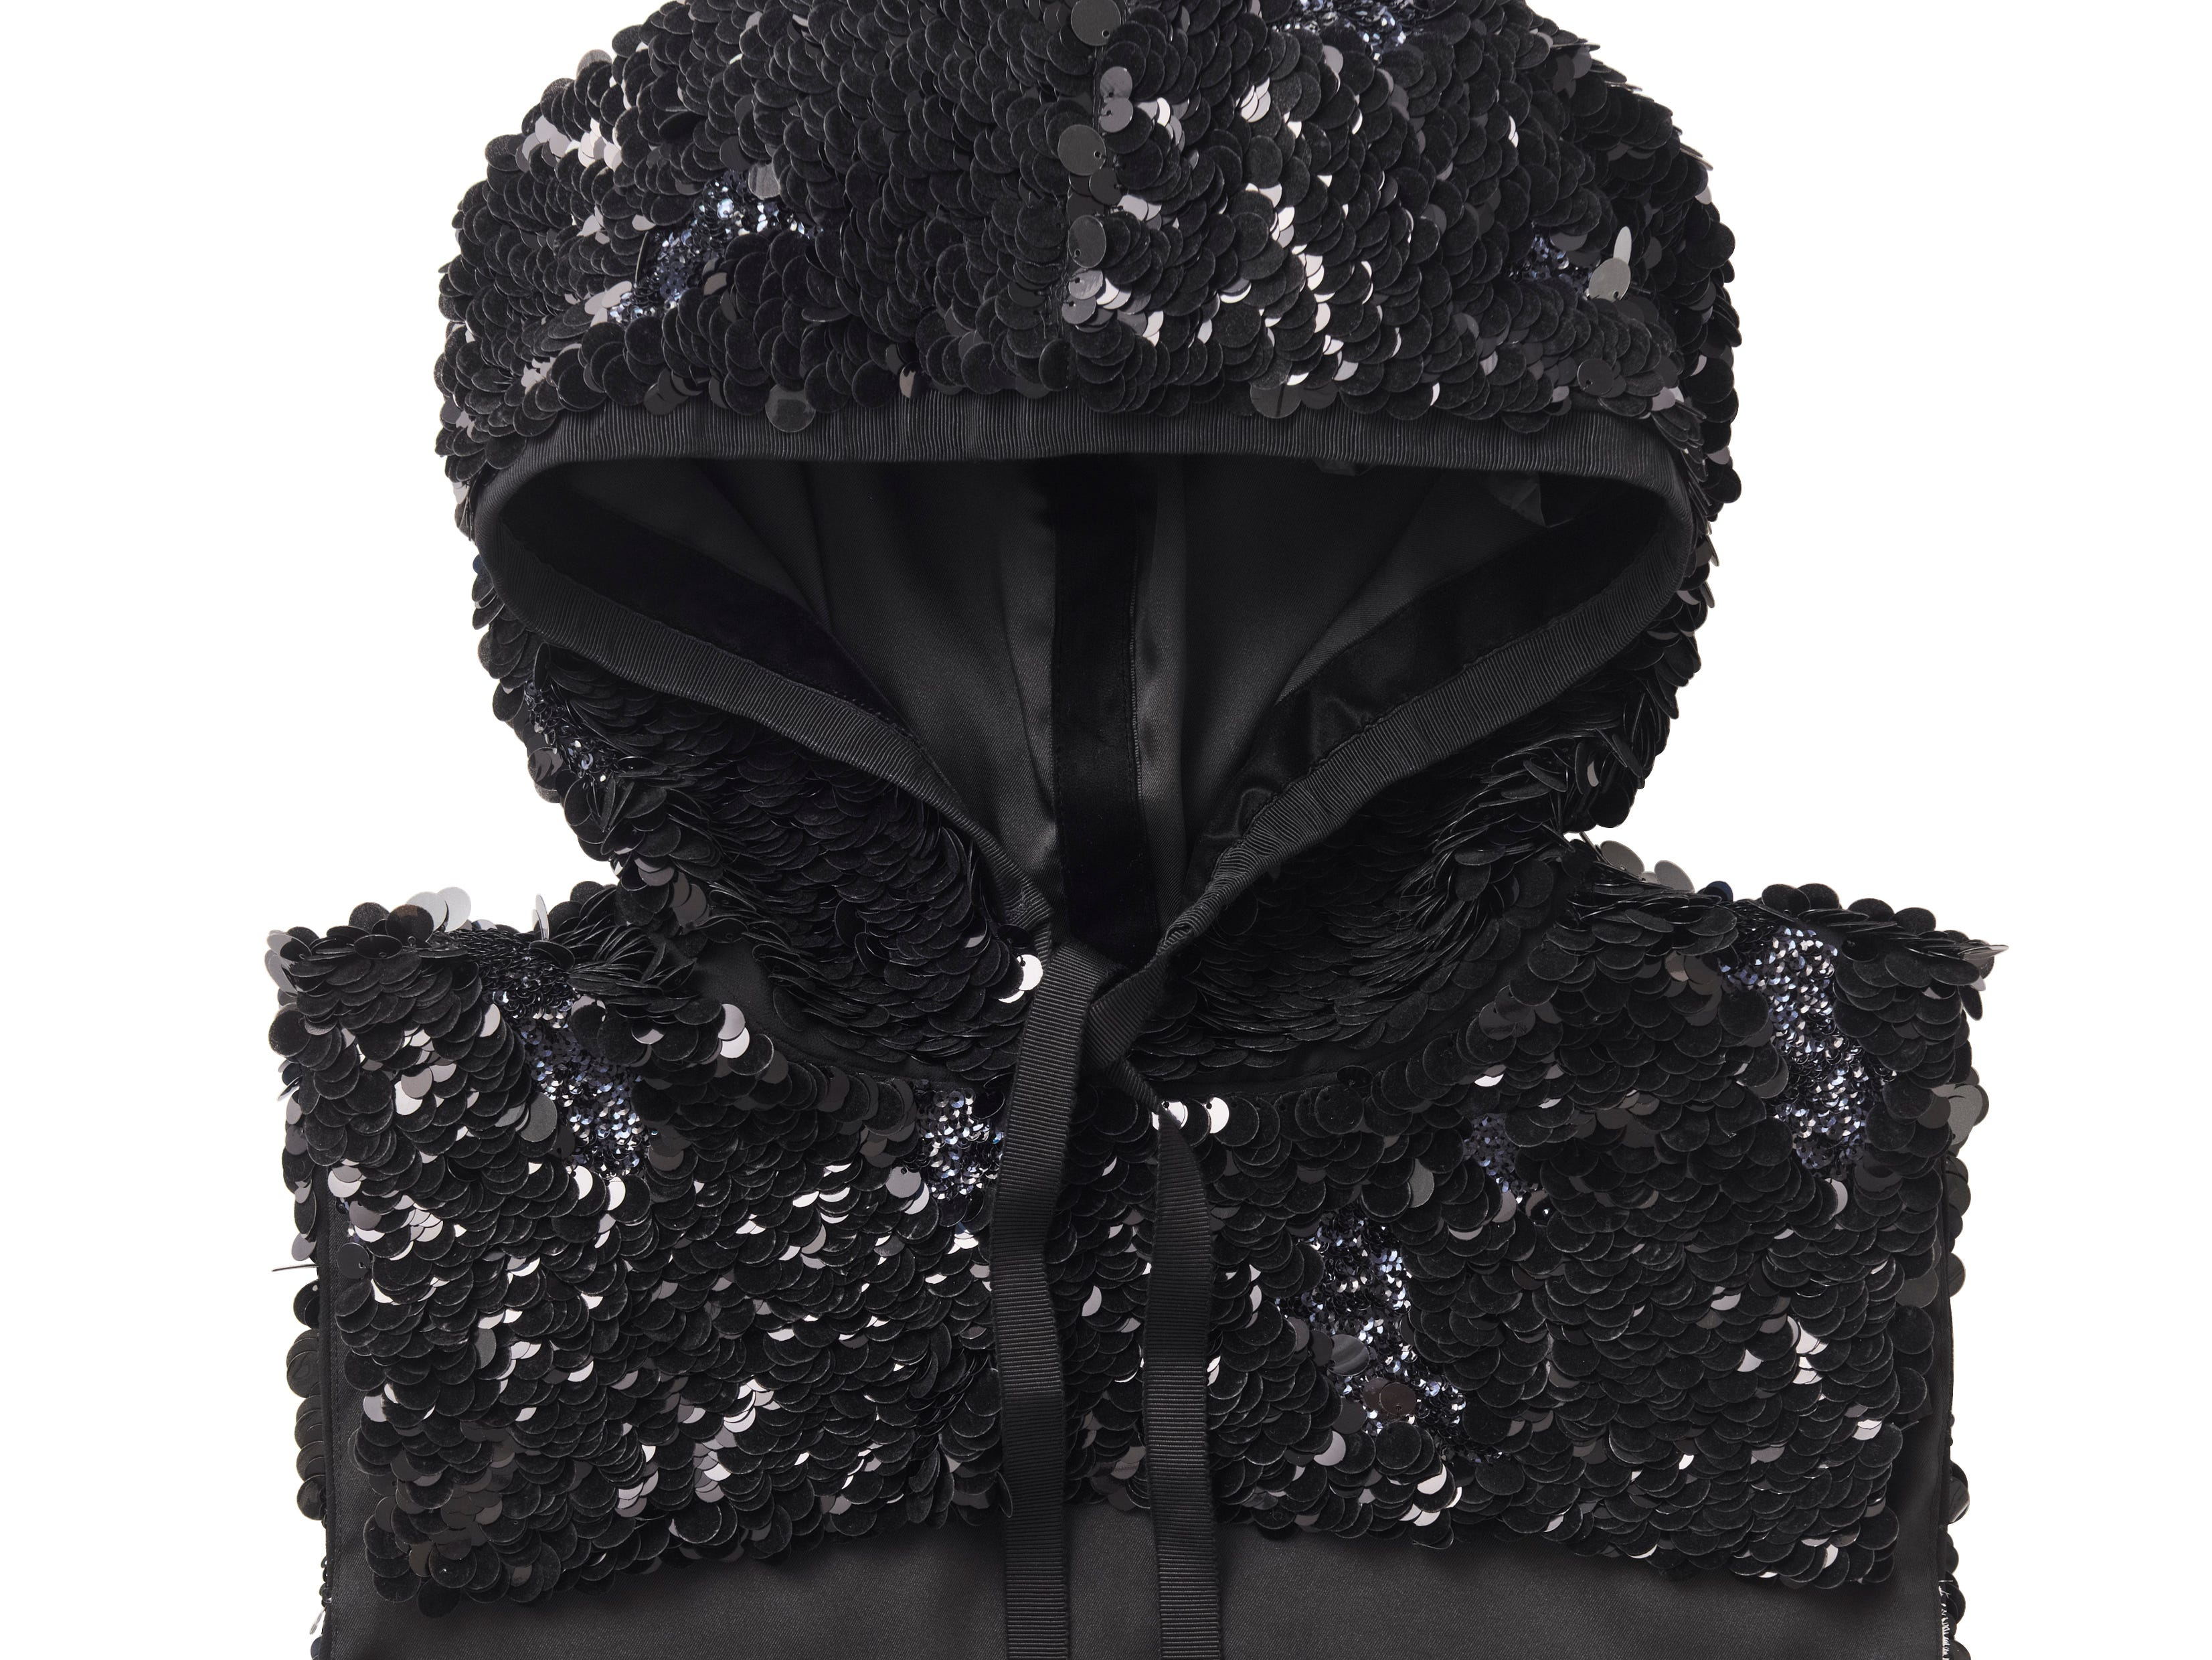 H&M says 35% of the materials in its clothing now are organic, recycled or otherwise sustainably sourced. The company's goal is to increase the percentage every year and reach 100% by 2030. Here, a hoodie in H&M's Conscious Exclusive collection for autumn and winter made of recycled sequins. Price: $99.